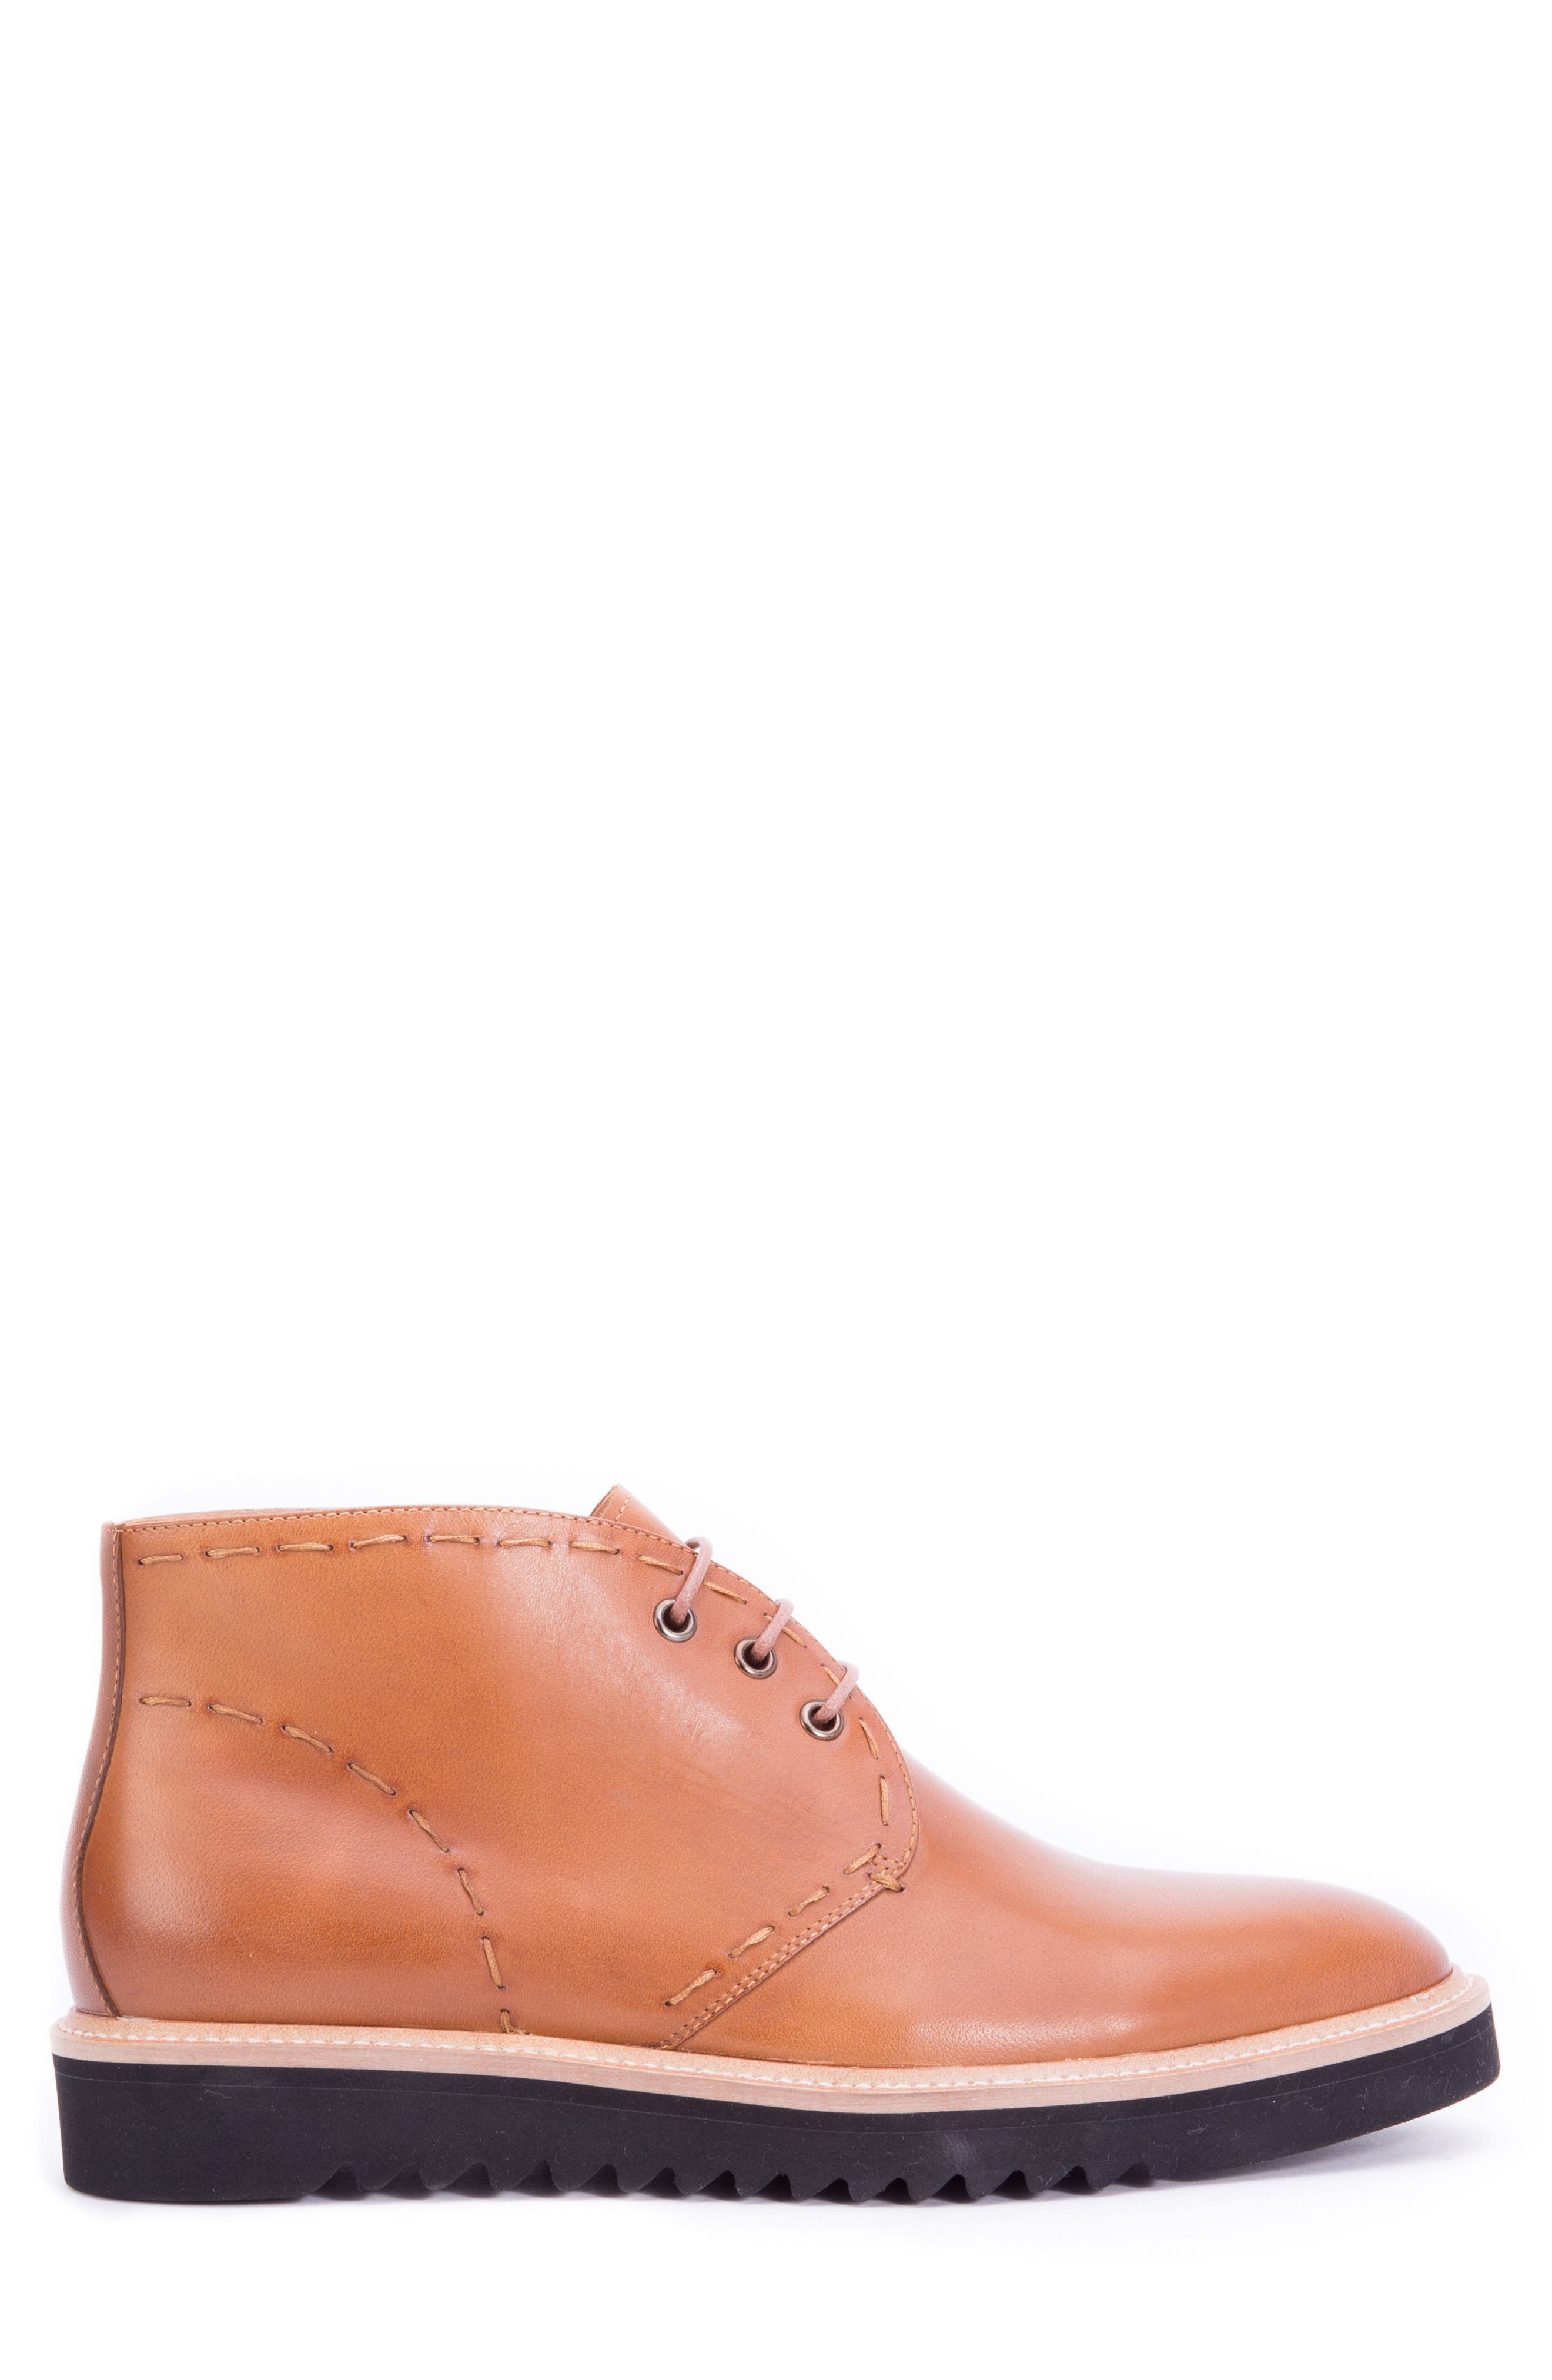 Lombardo Chukka Boot,                             Alternate thumbnail 3, color,                             COGNAC LEATHER